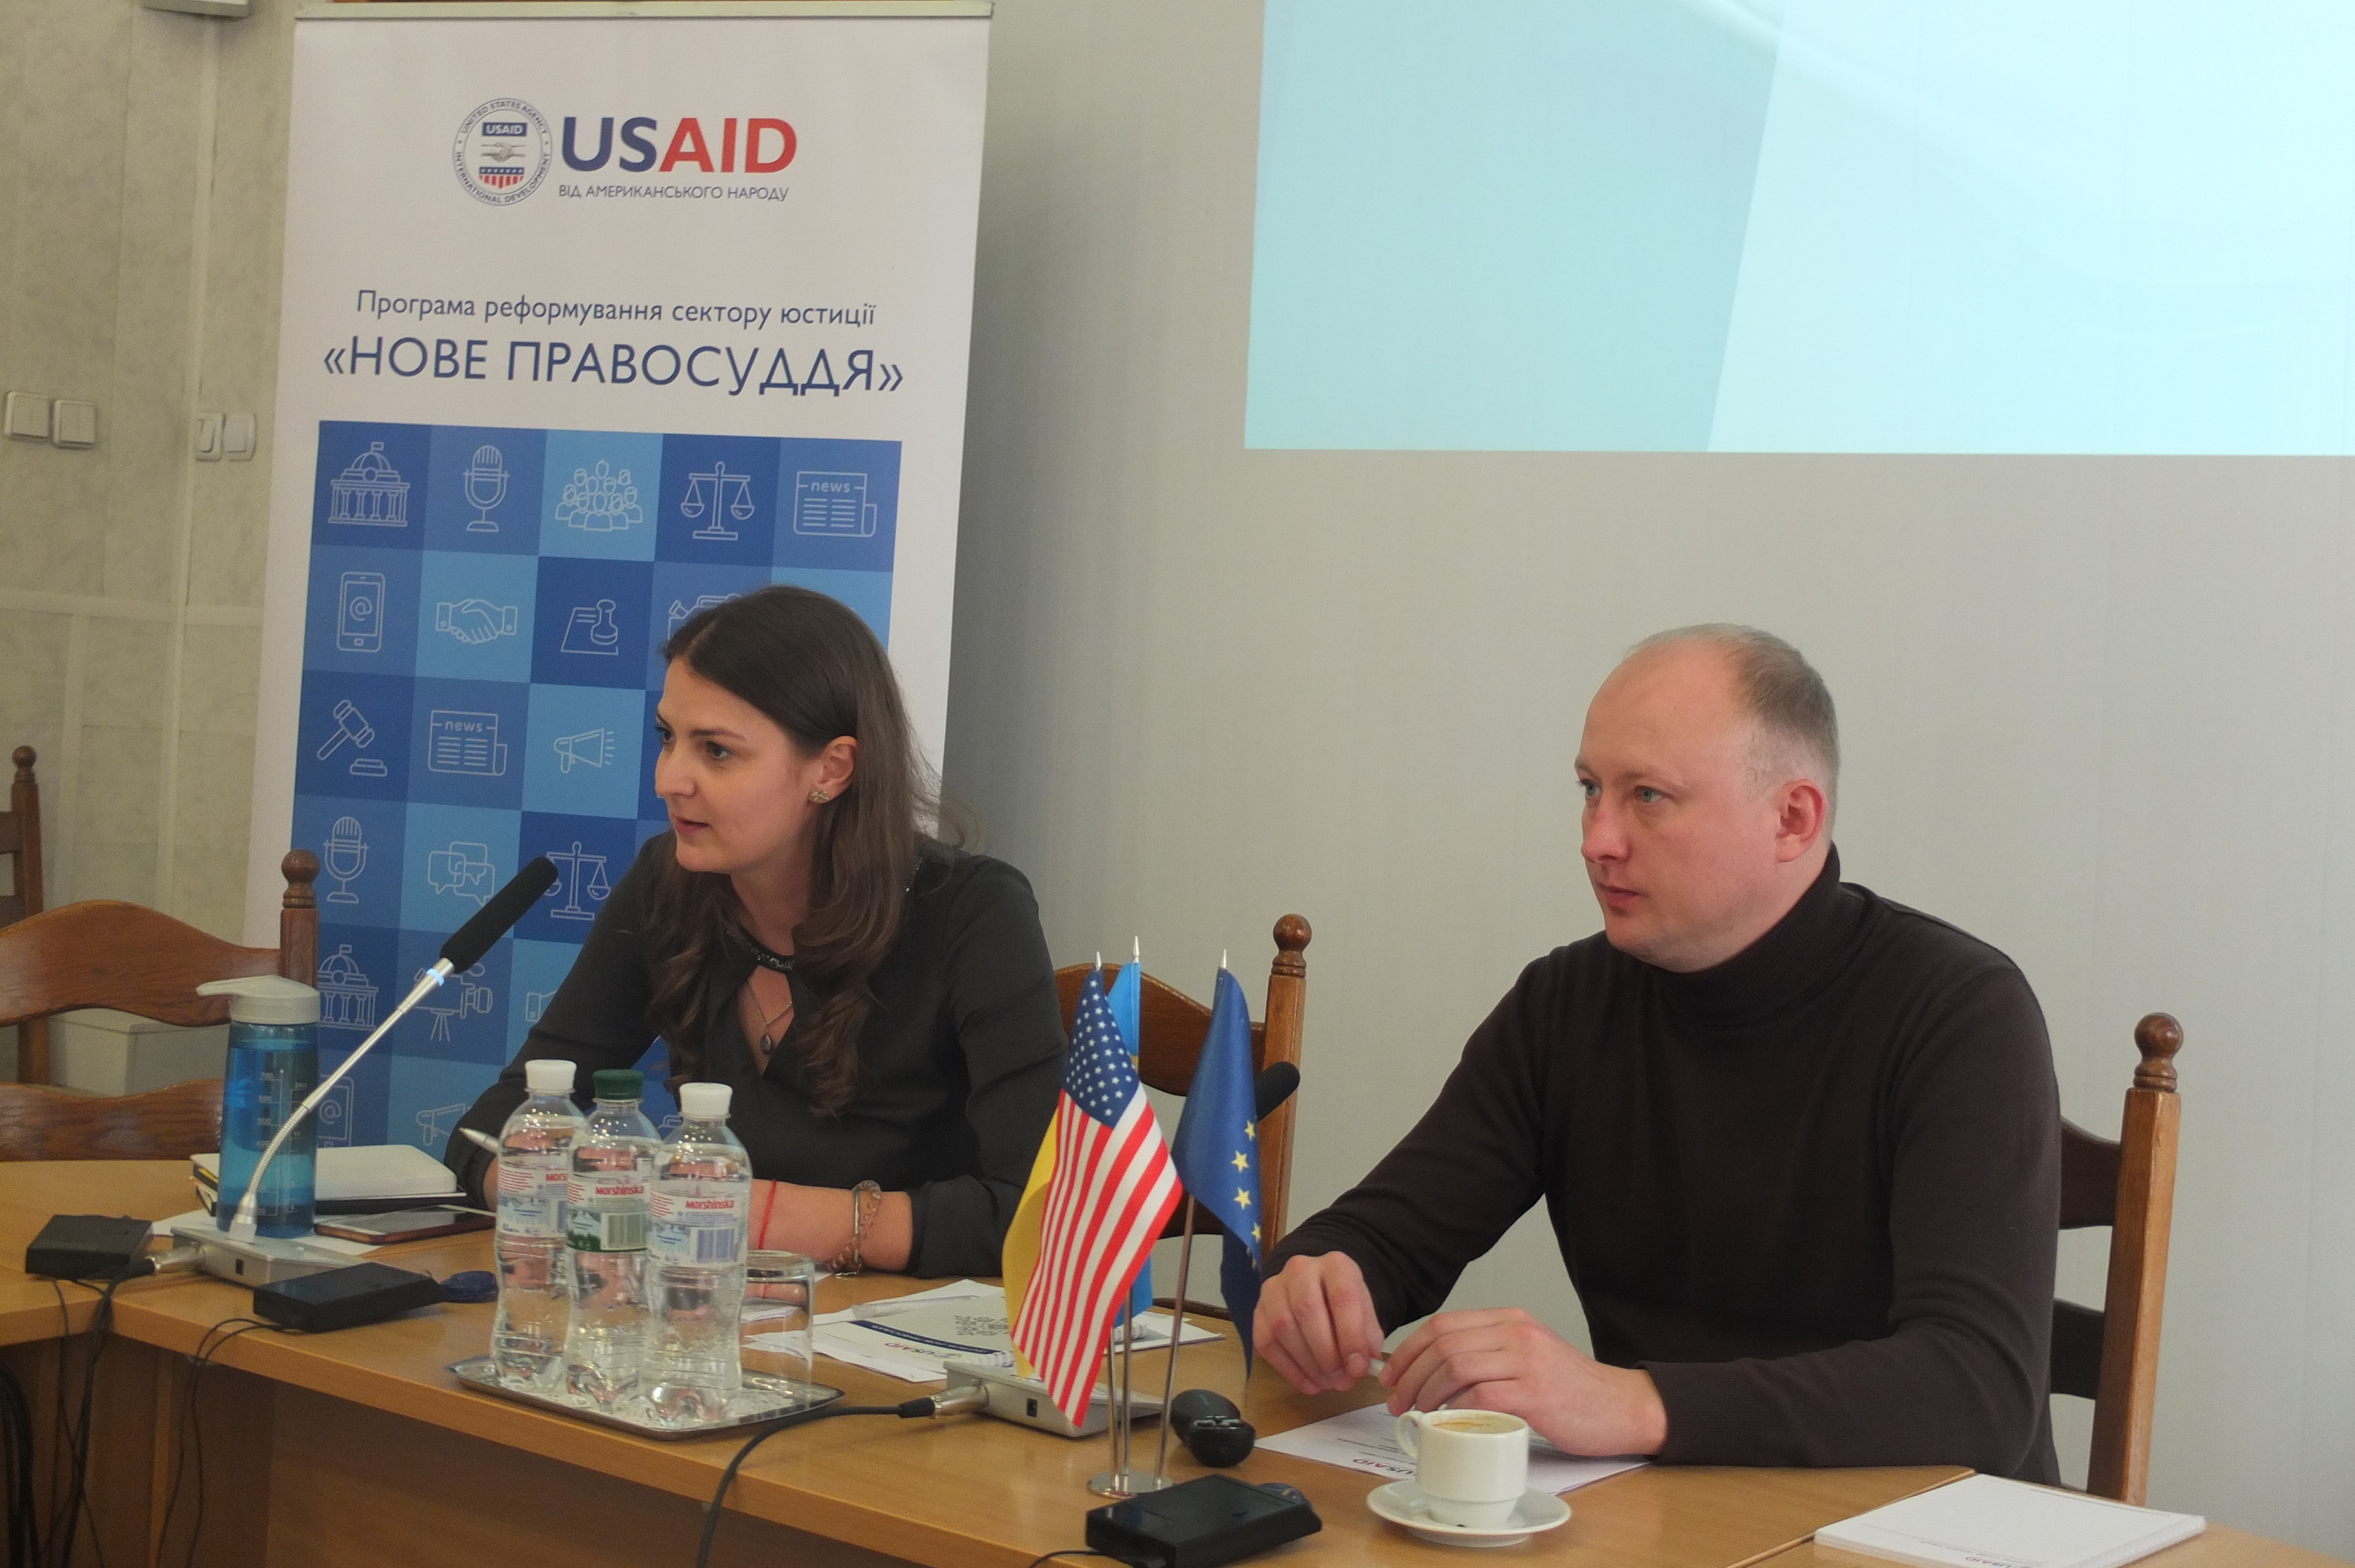 Deputy Head of the Council of Private Enforcement Officers of Ukraine Oleksandr Syvokozov and Legal Advisor of the USAID New Justice Program Miroslava Vorontsova at the Rule of Law Donors and Implementers Meeting on October 2, 2019 in Kyiv. PHOTO: USAID New Justice Program